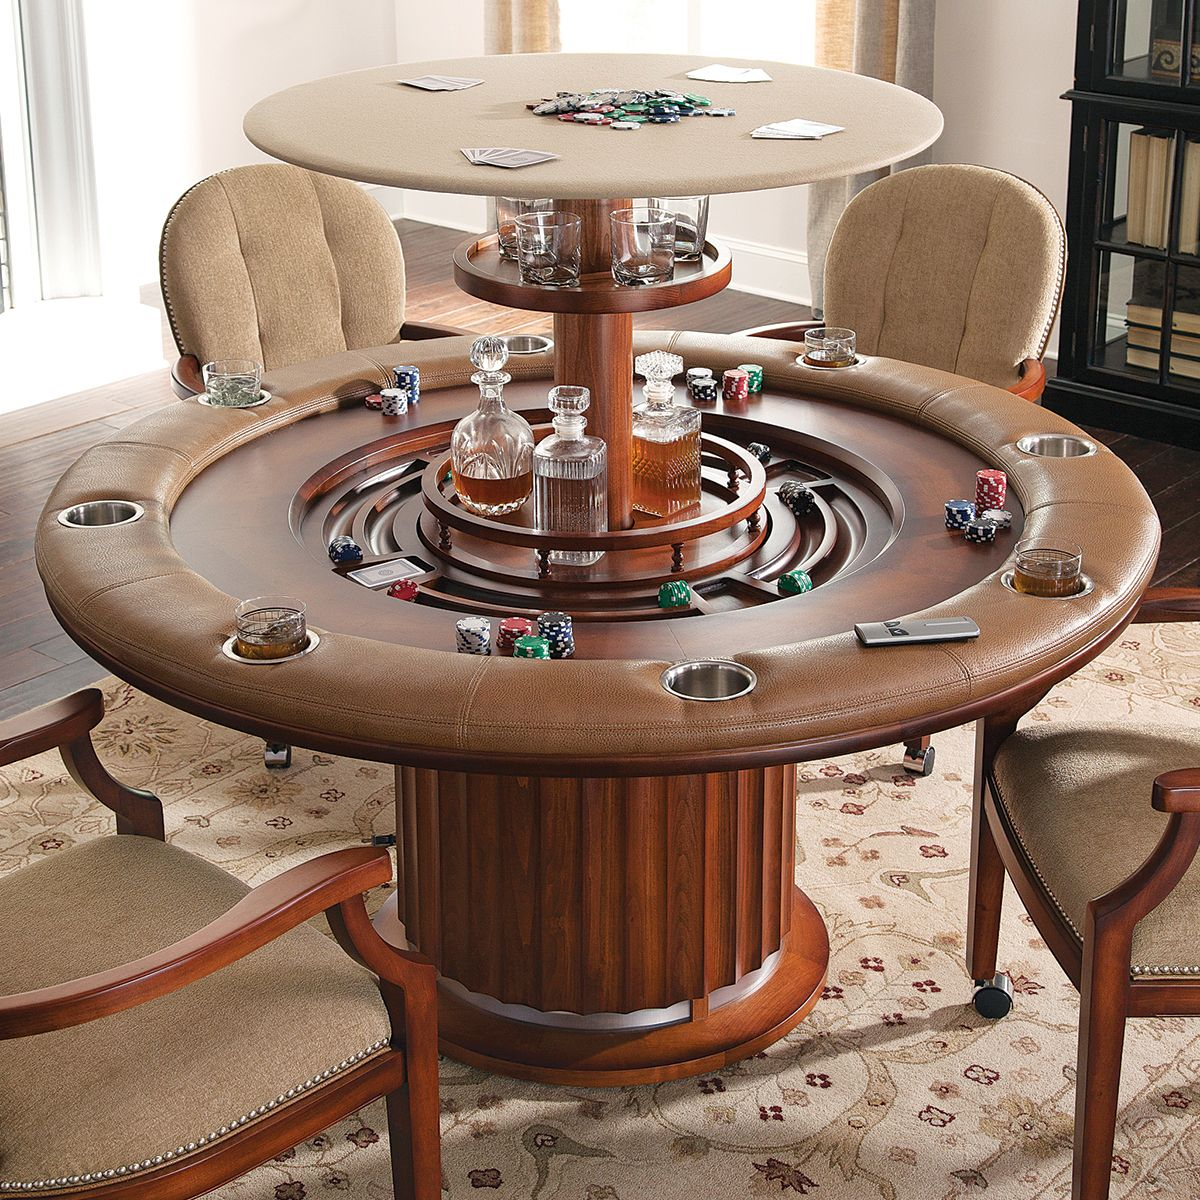 hidden bar furniture. unique hidden bar game table high rise poker furniture